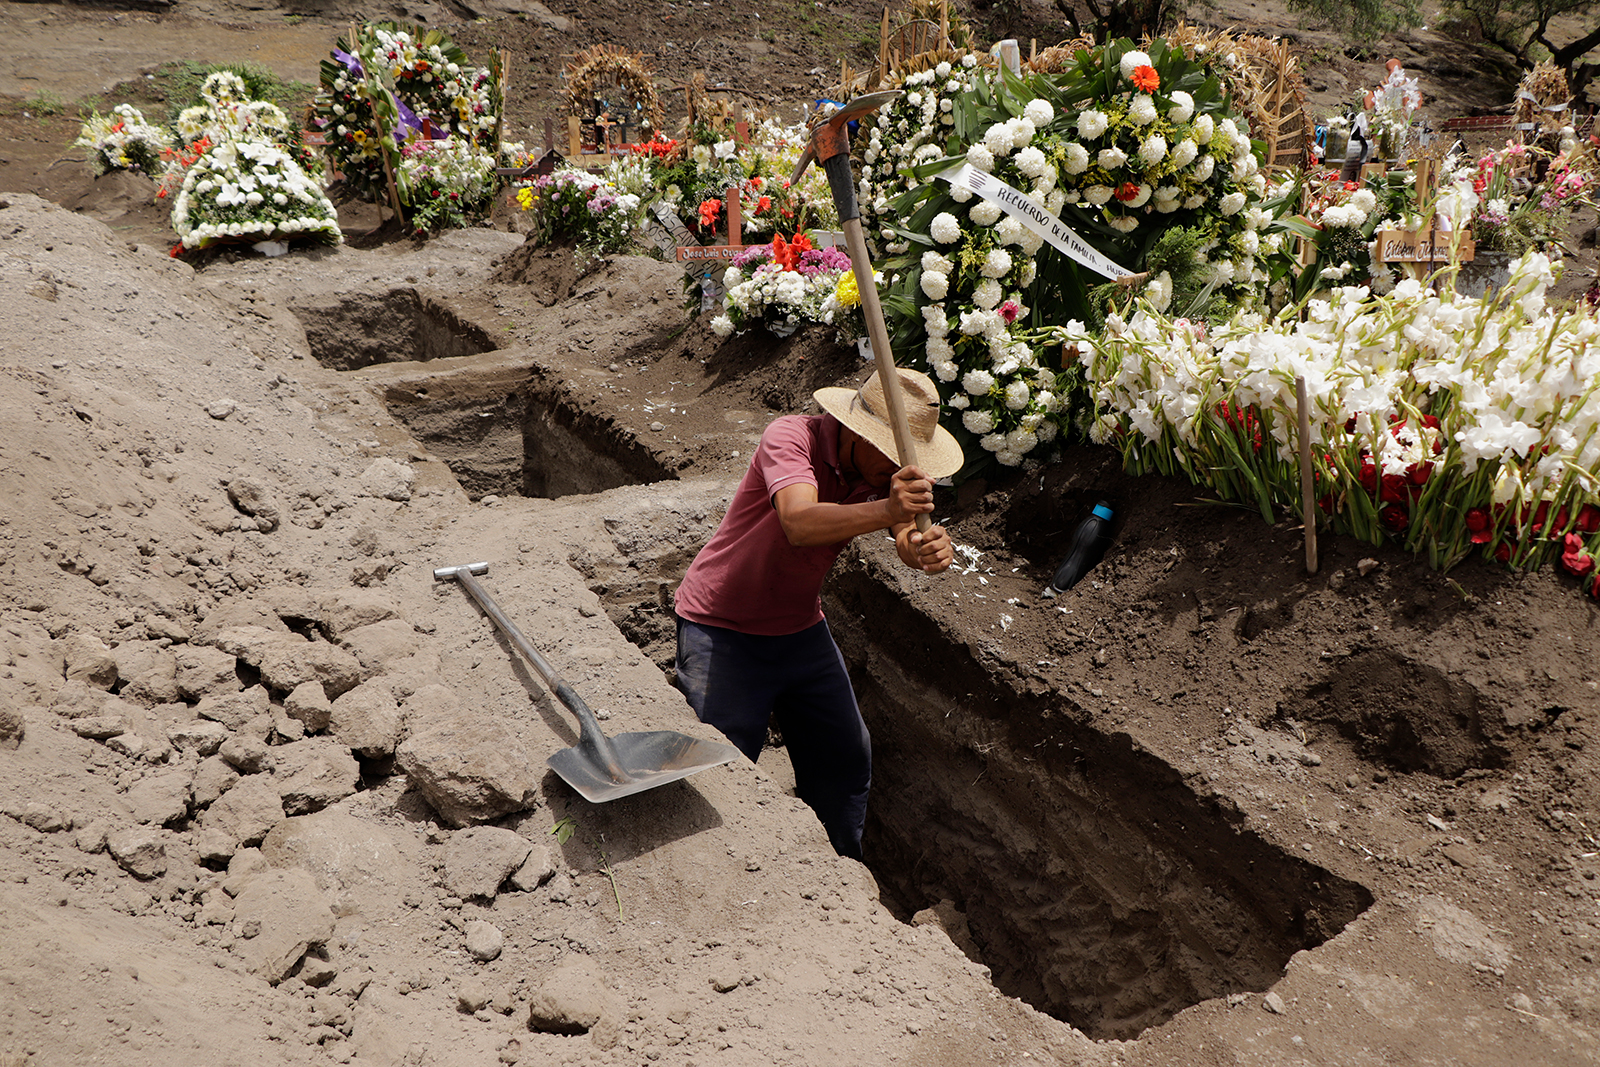 A man digs graves in the Xico-Chalco Civil Pantheon, State of Mexico, on June 26.